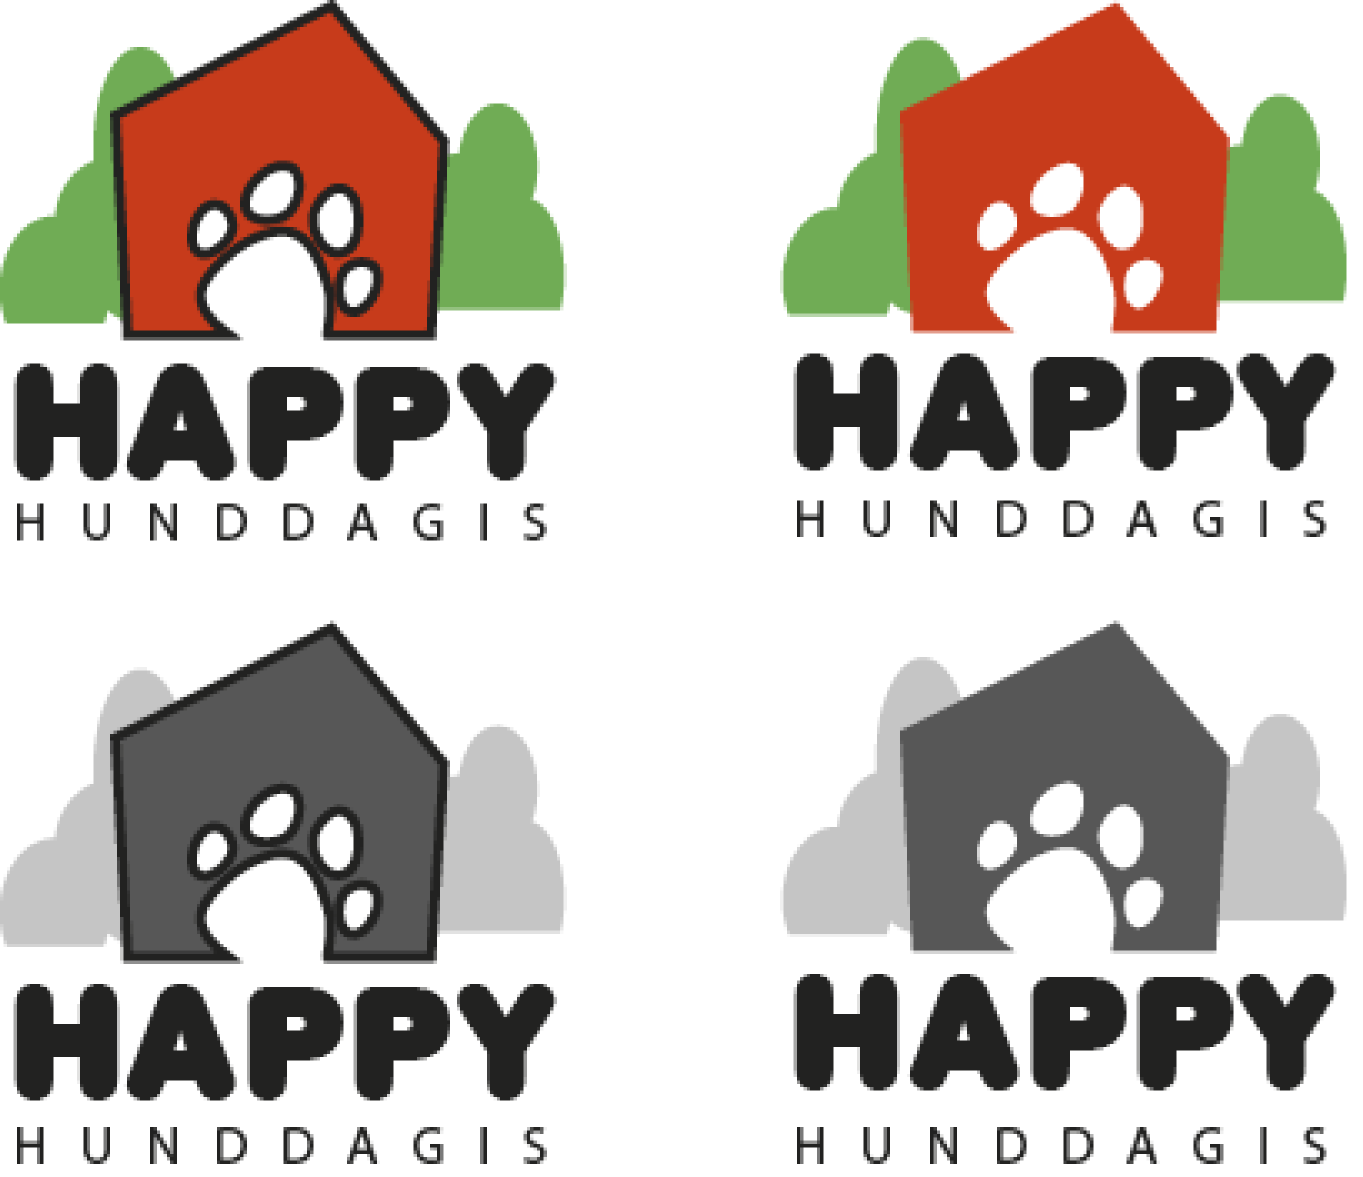 Happy Hunddagis Logos